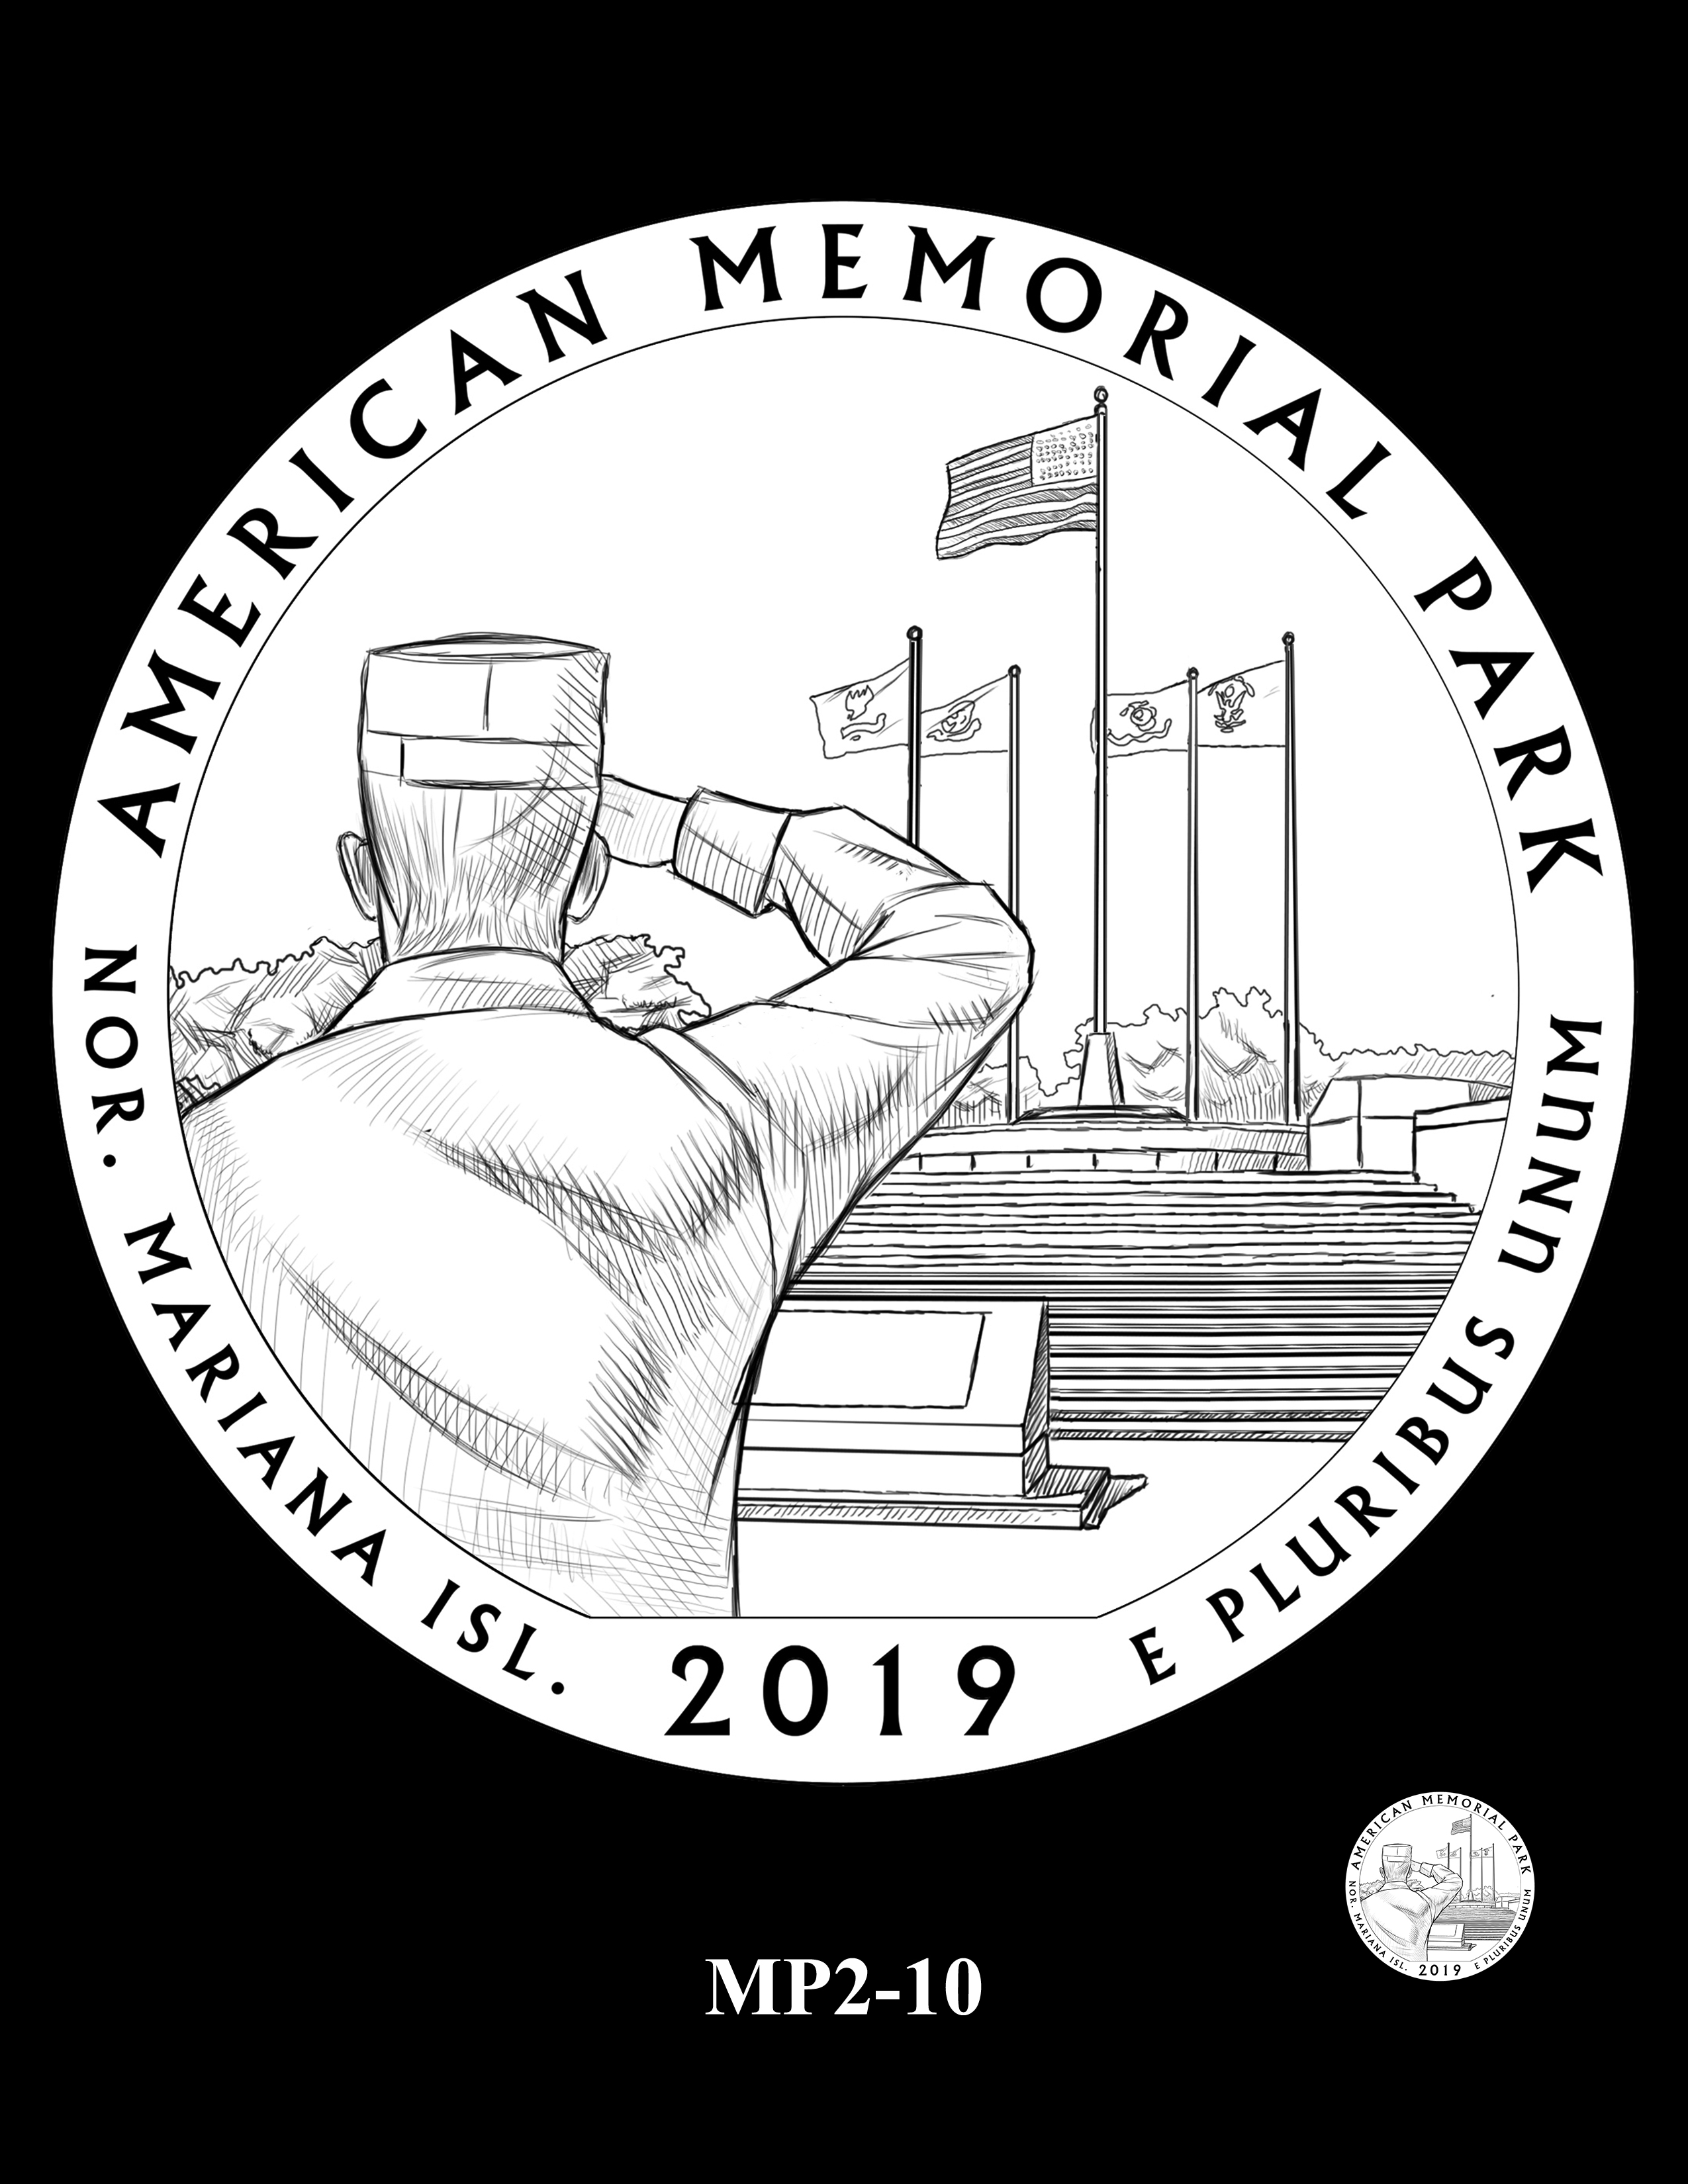 MP2-10 -- 2019 America the Beautiful Quarters® Program